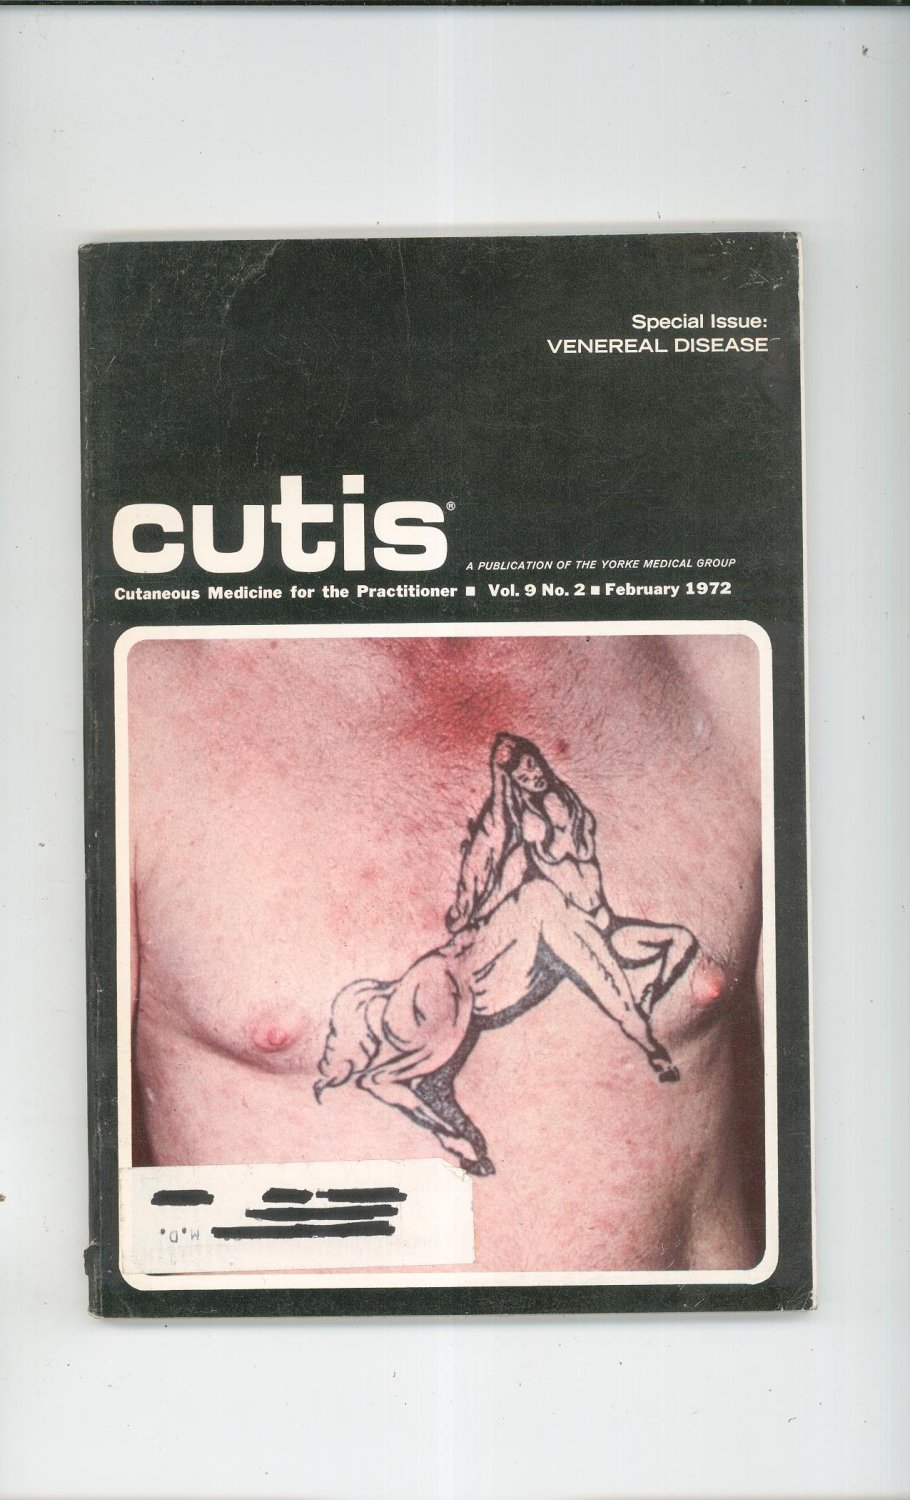 February 1972 Cutis Cutaneous Medicine For The Practitioner Magazine Vintage Venereal Disease